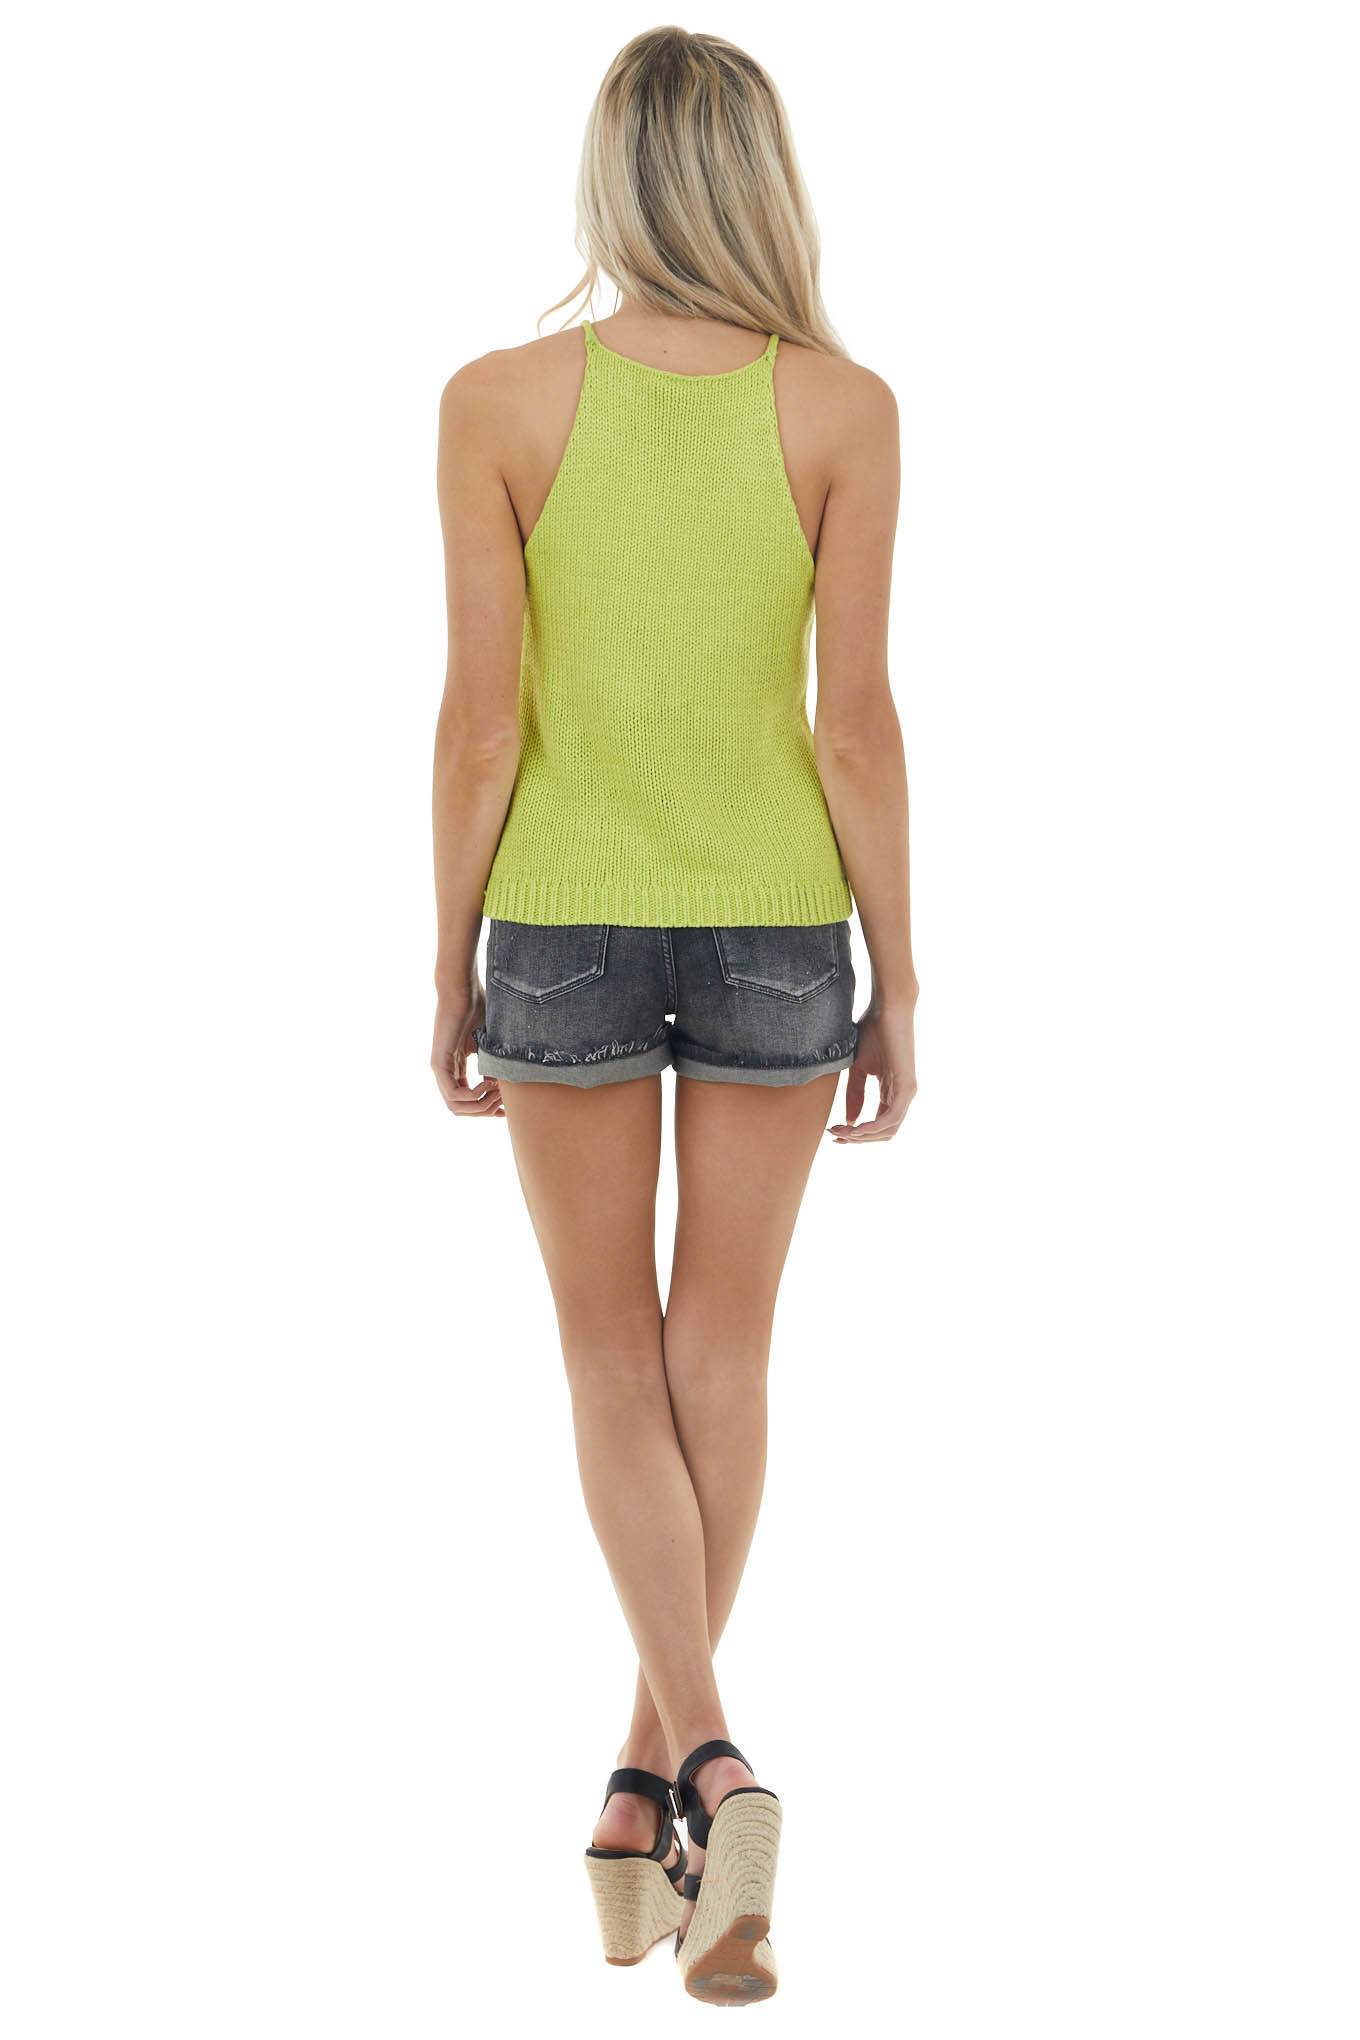 Lime Stretchy Cable Knit Sleeveless Halter Neckline Top